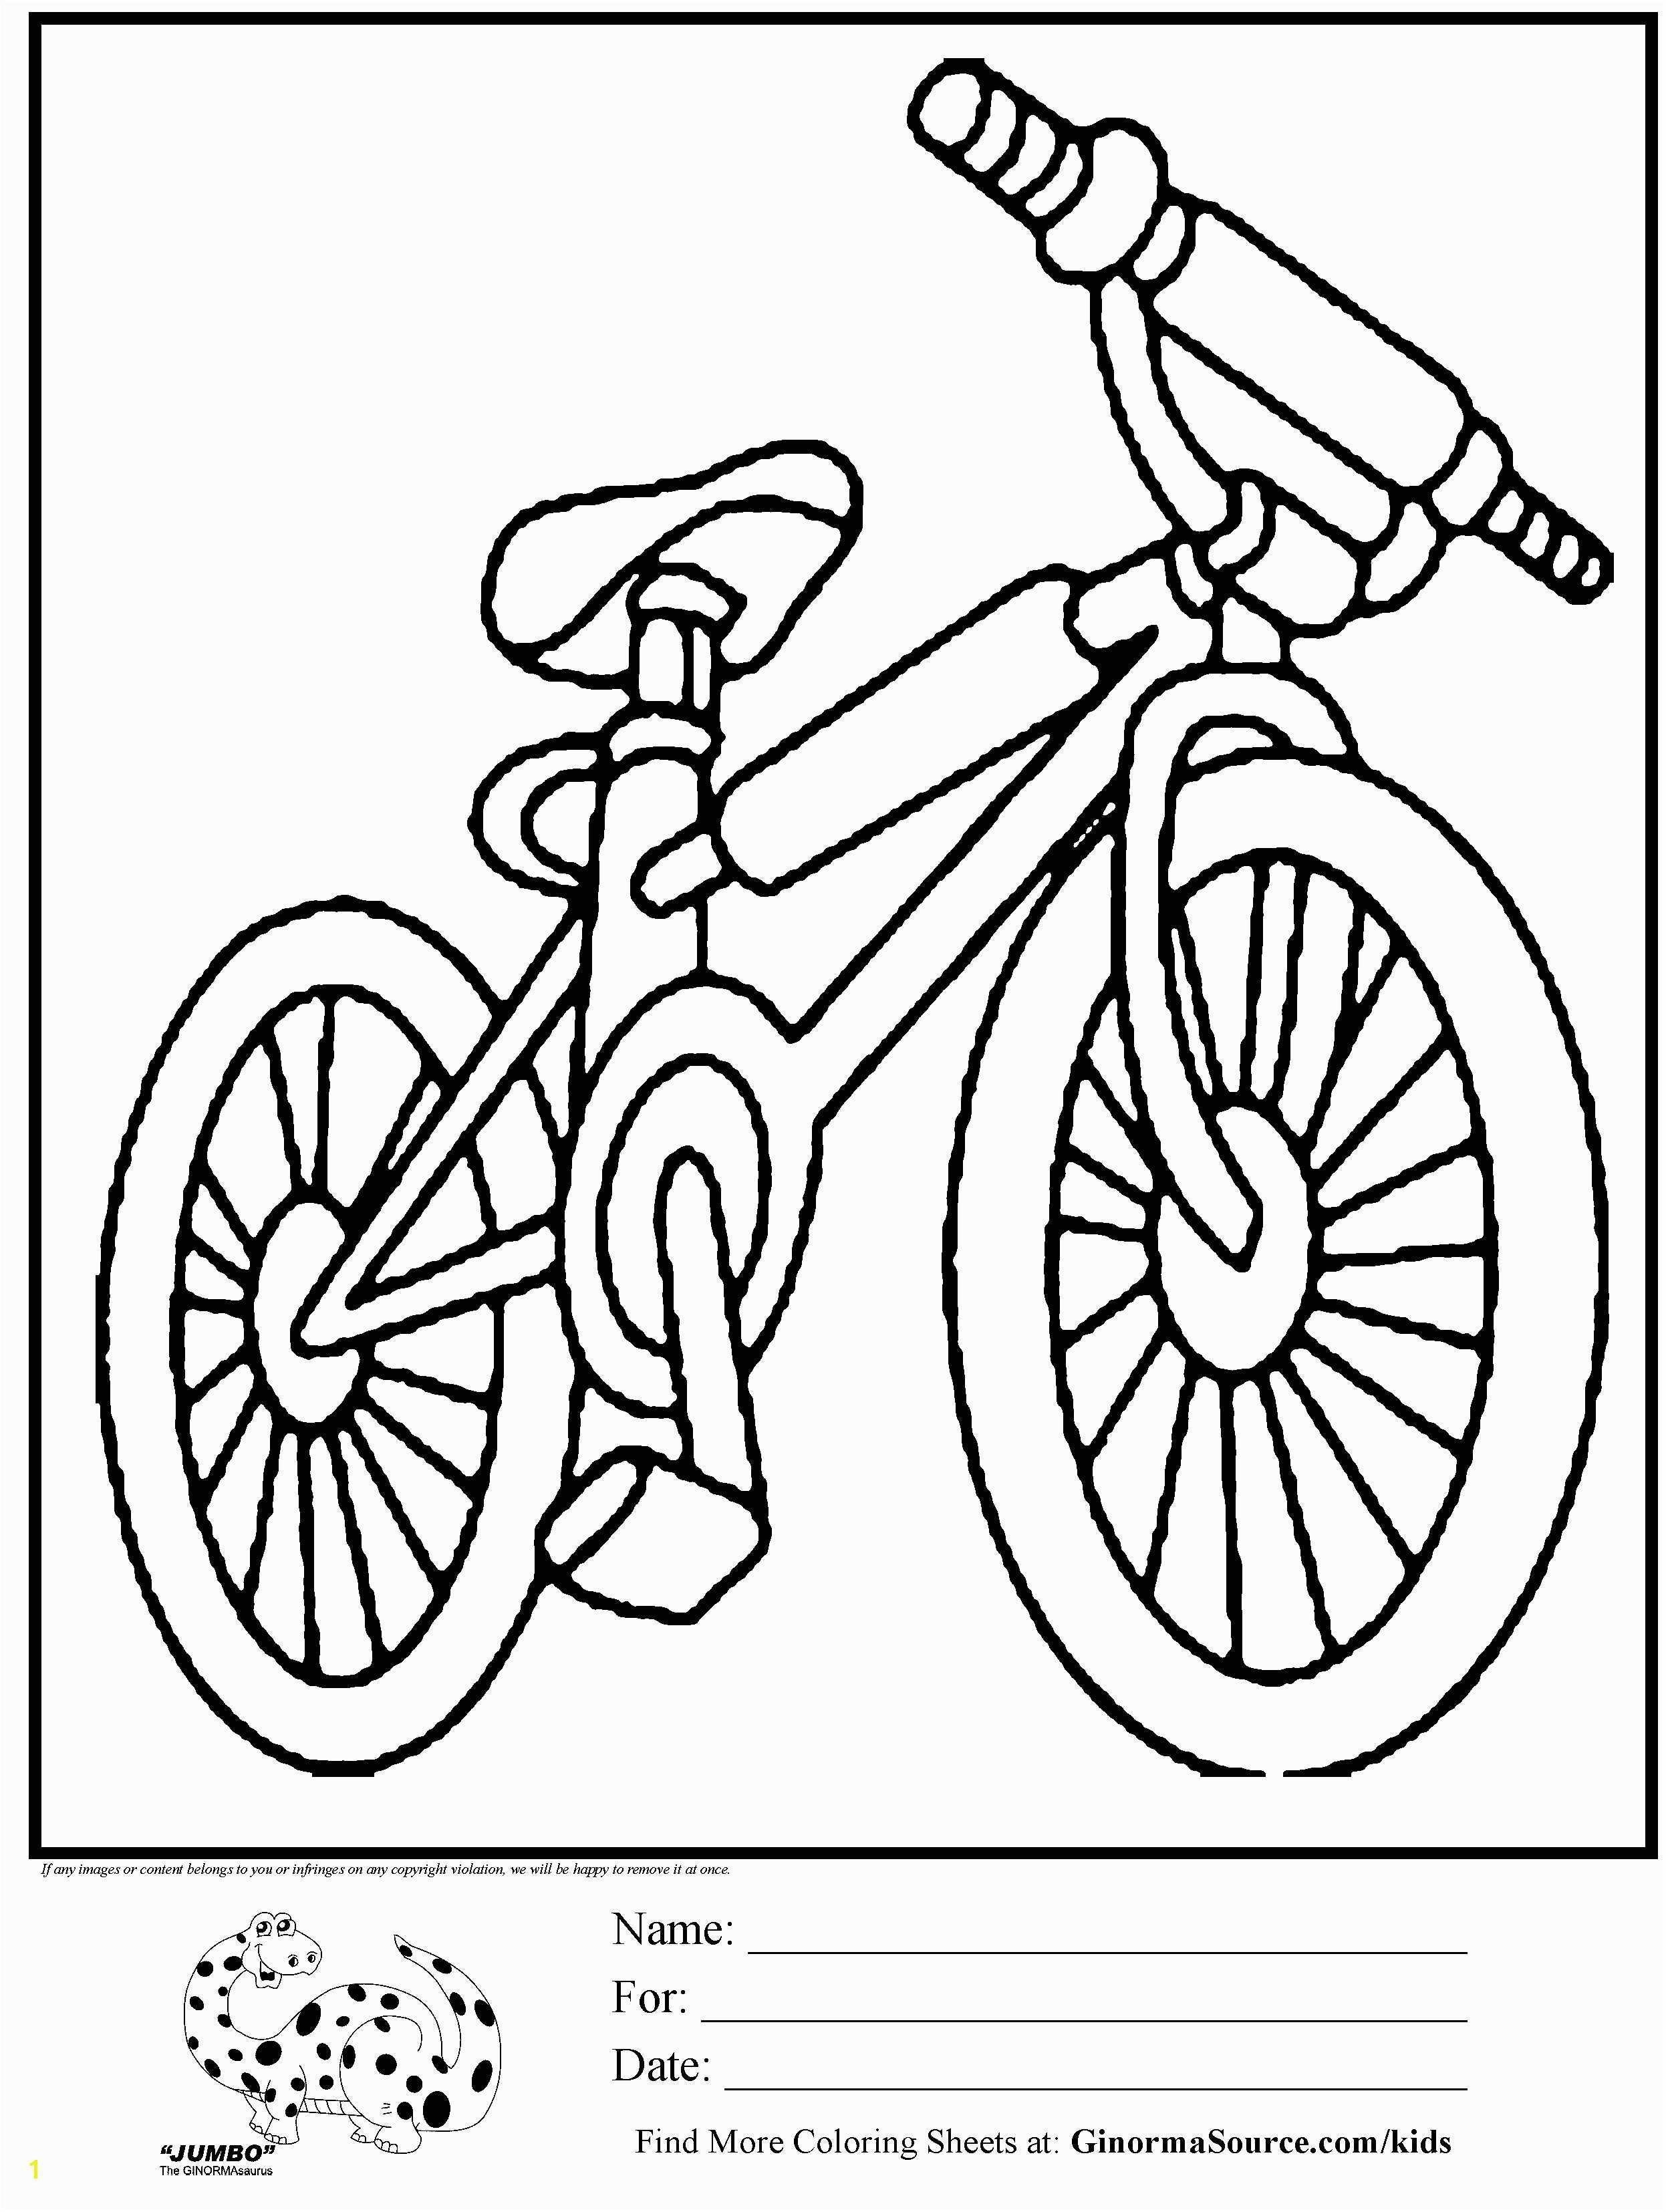 Elegant Image Of Bike Coloring Pages